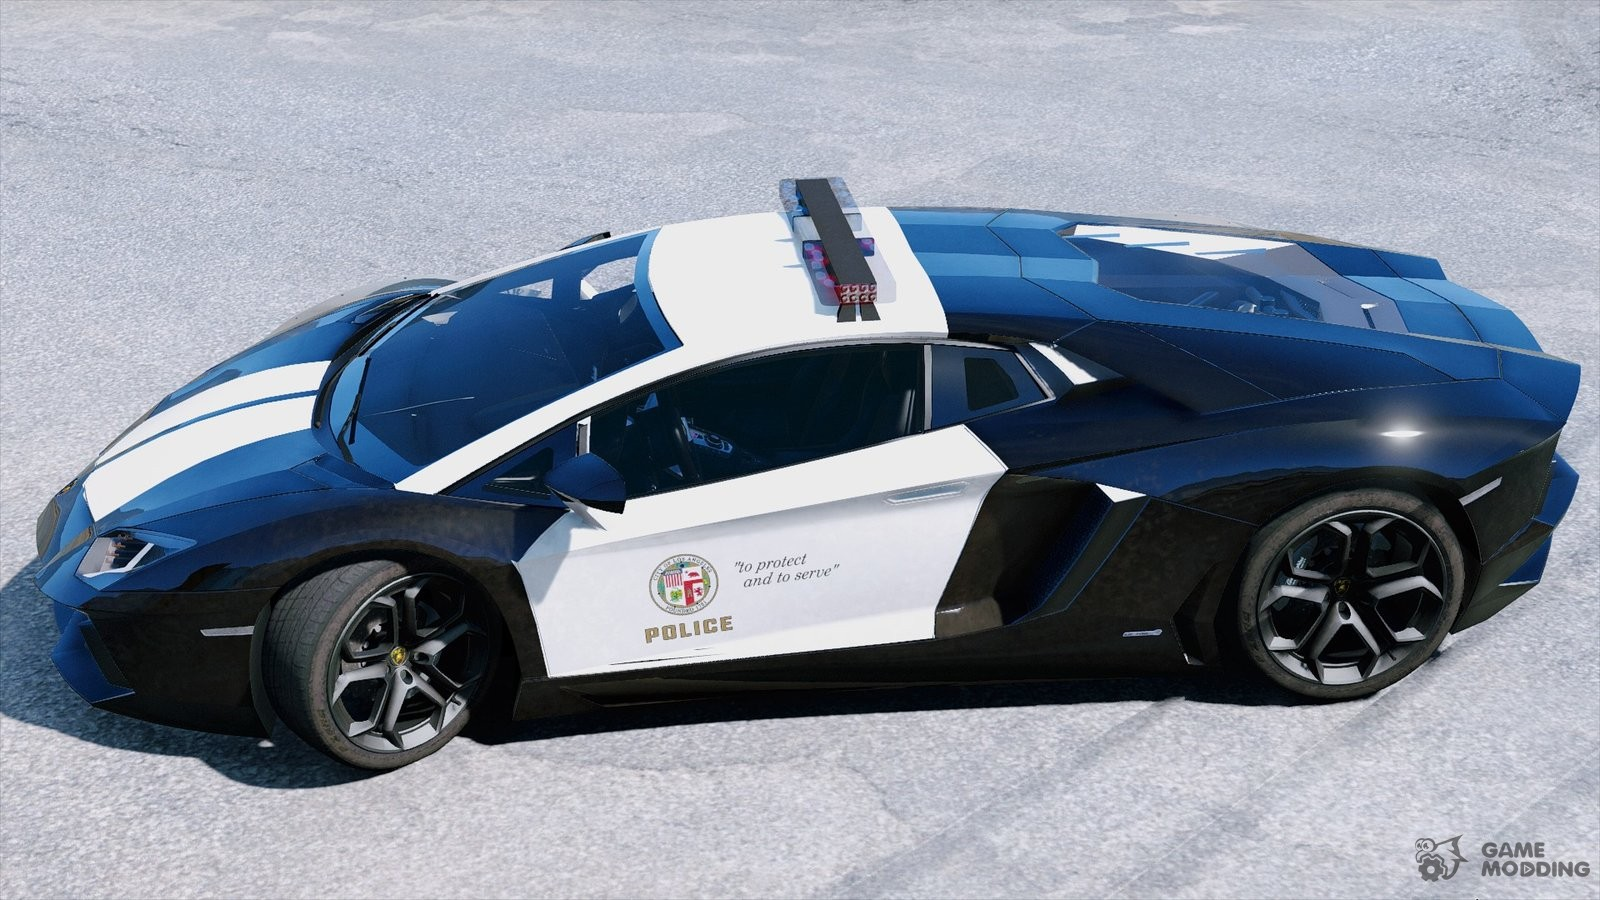 are police cars automatic or manual